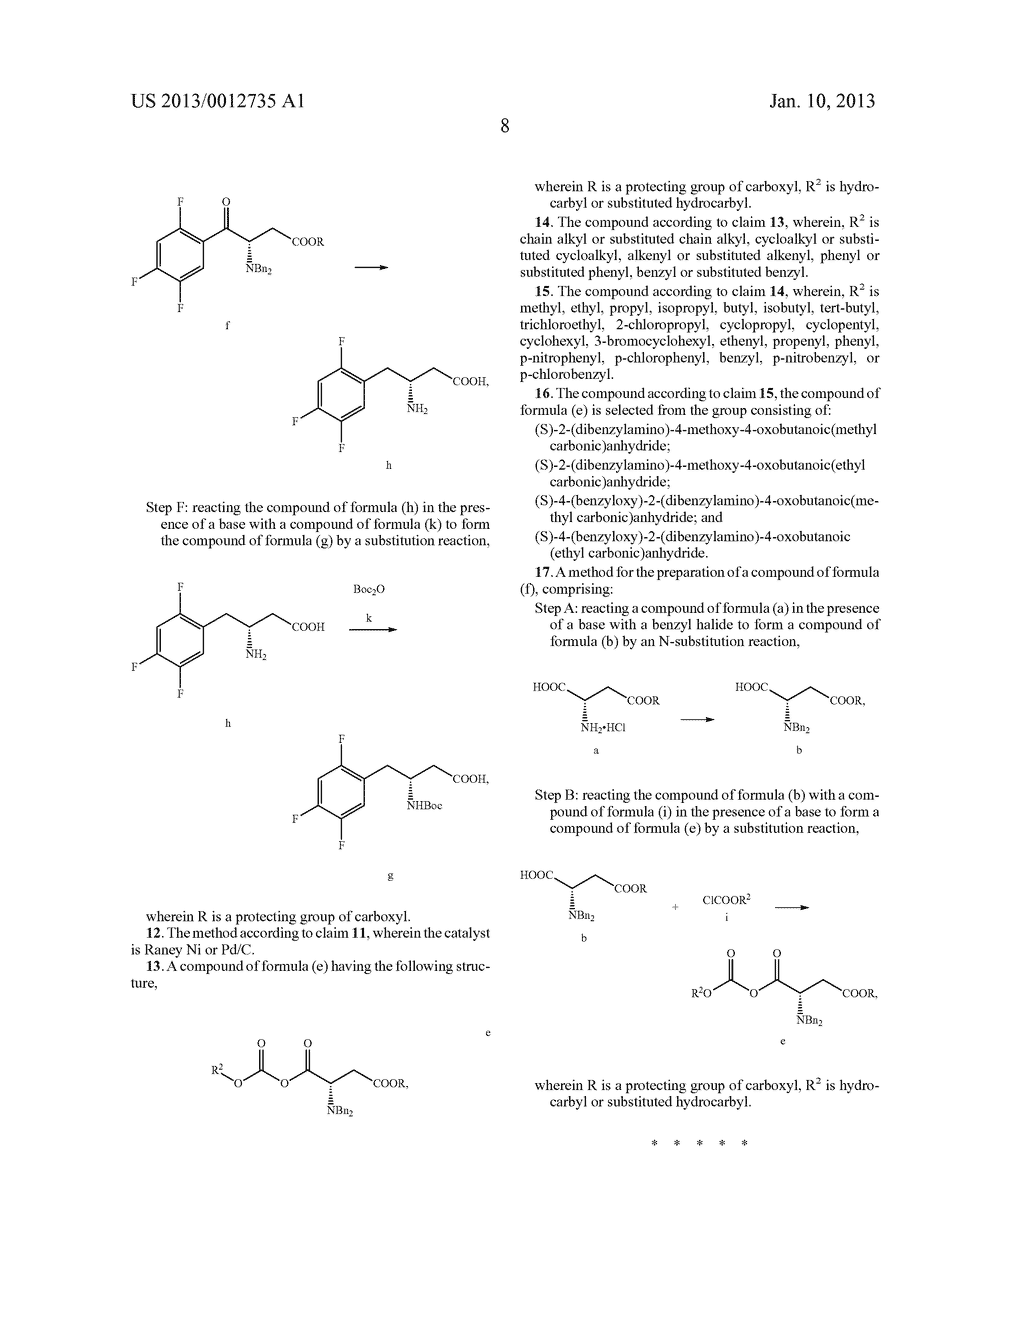 SITAGLIPTIN INTERMEDIATE COMPOUNDS, PREPARATION METHODS AND USES THEREOF - diagram, schematic, and image 09